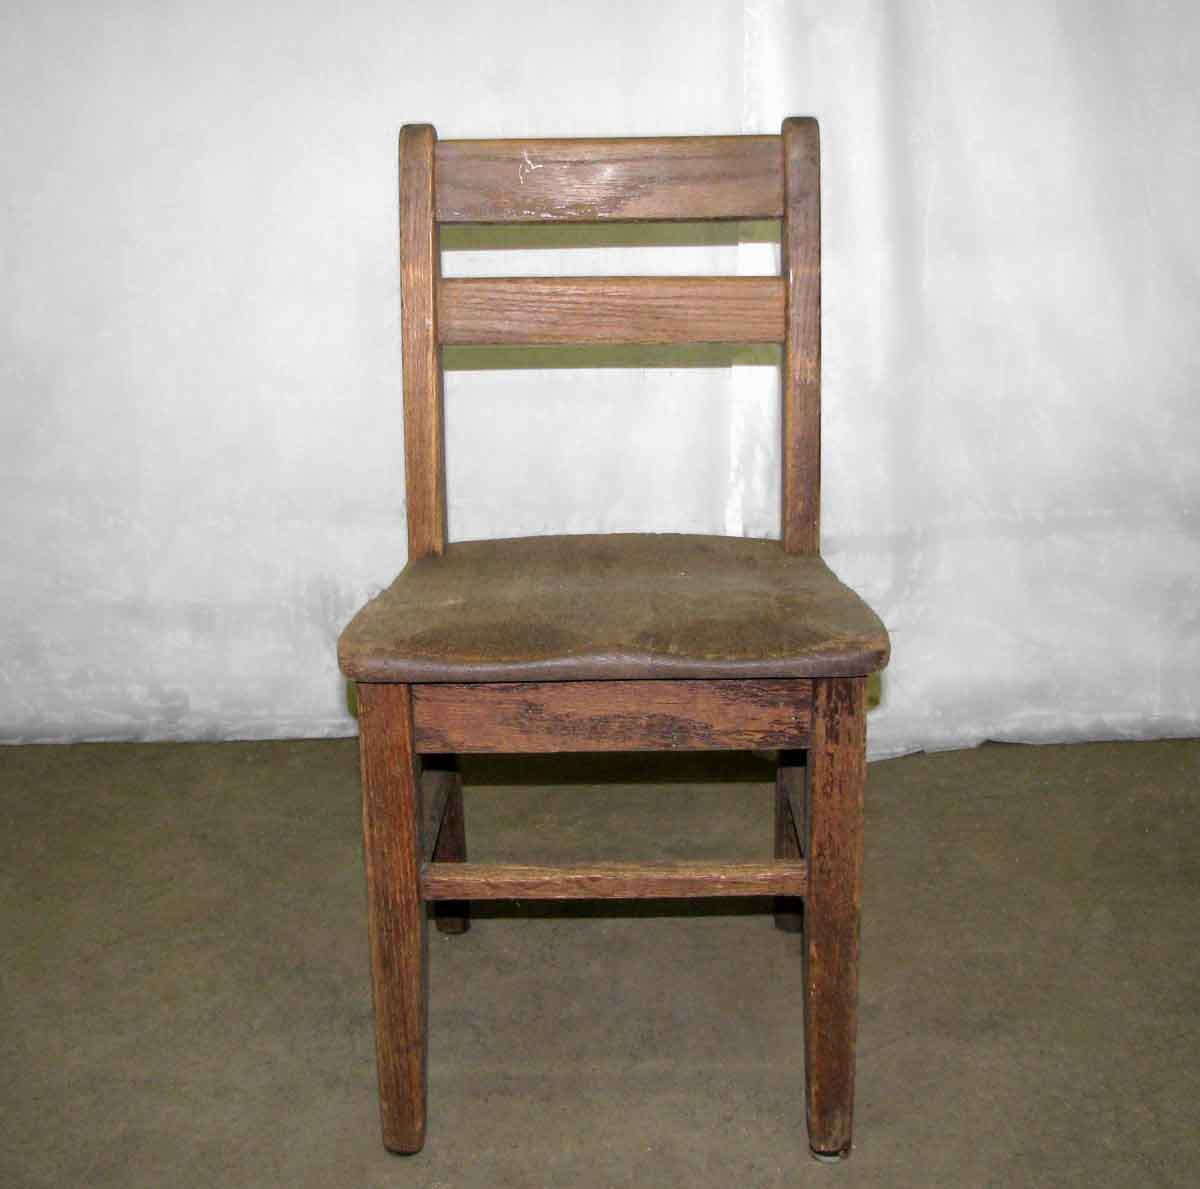 Old wooden chairs - Old Wooden School Chair